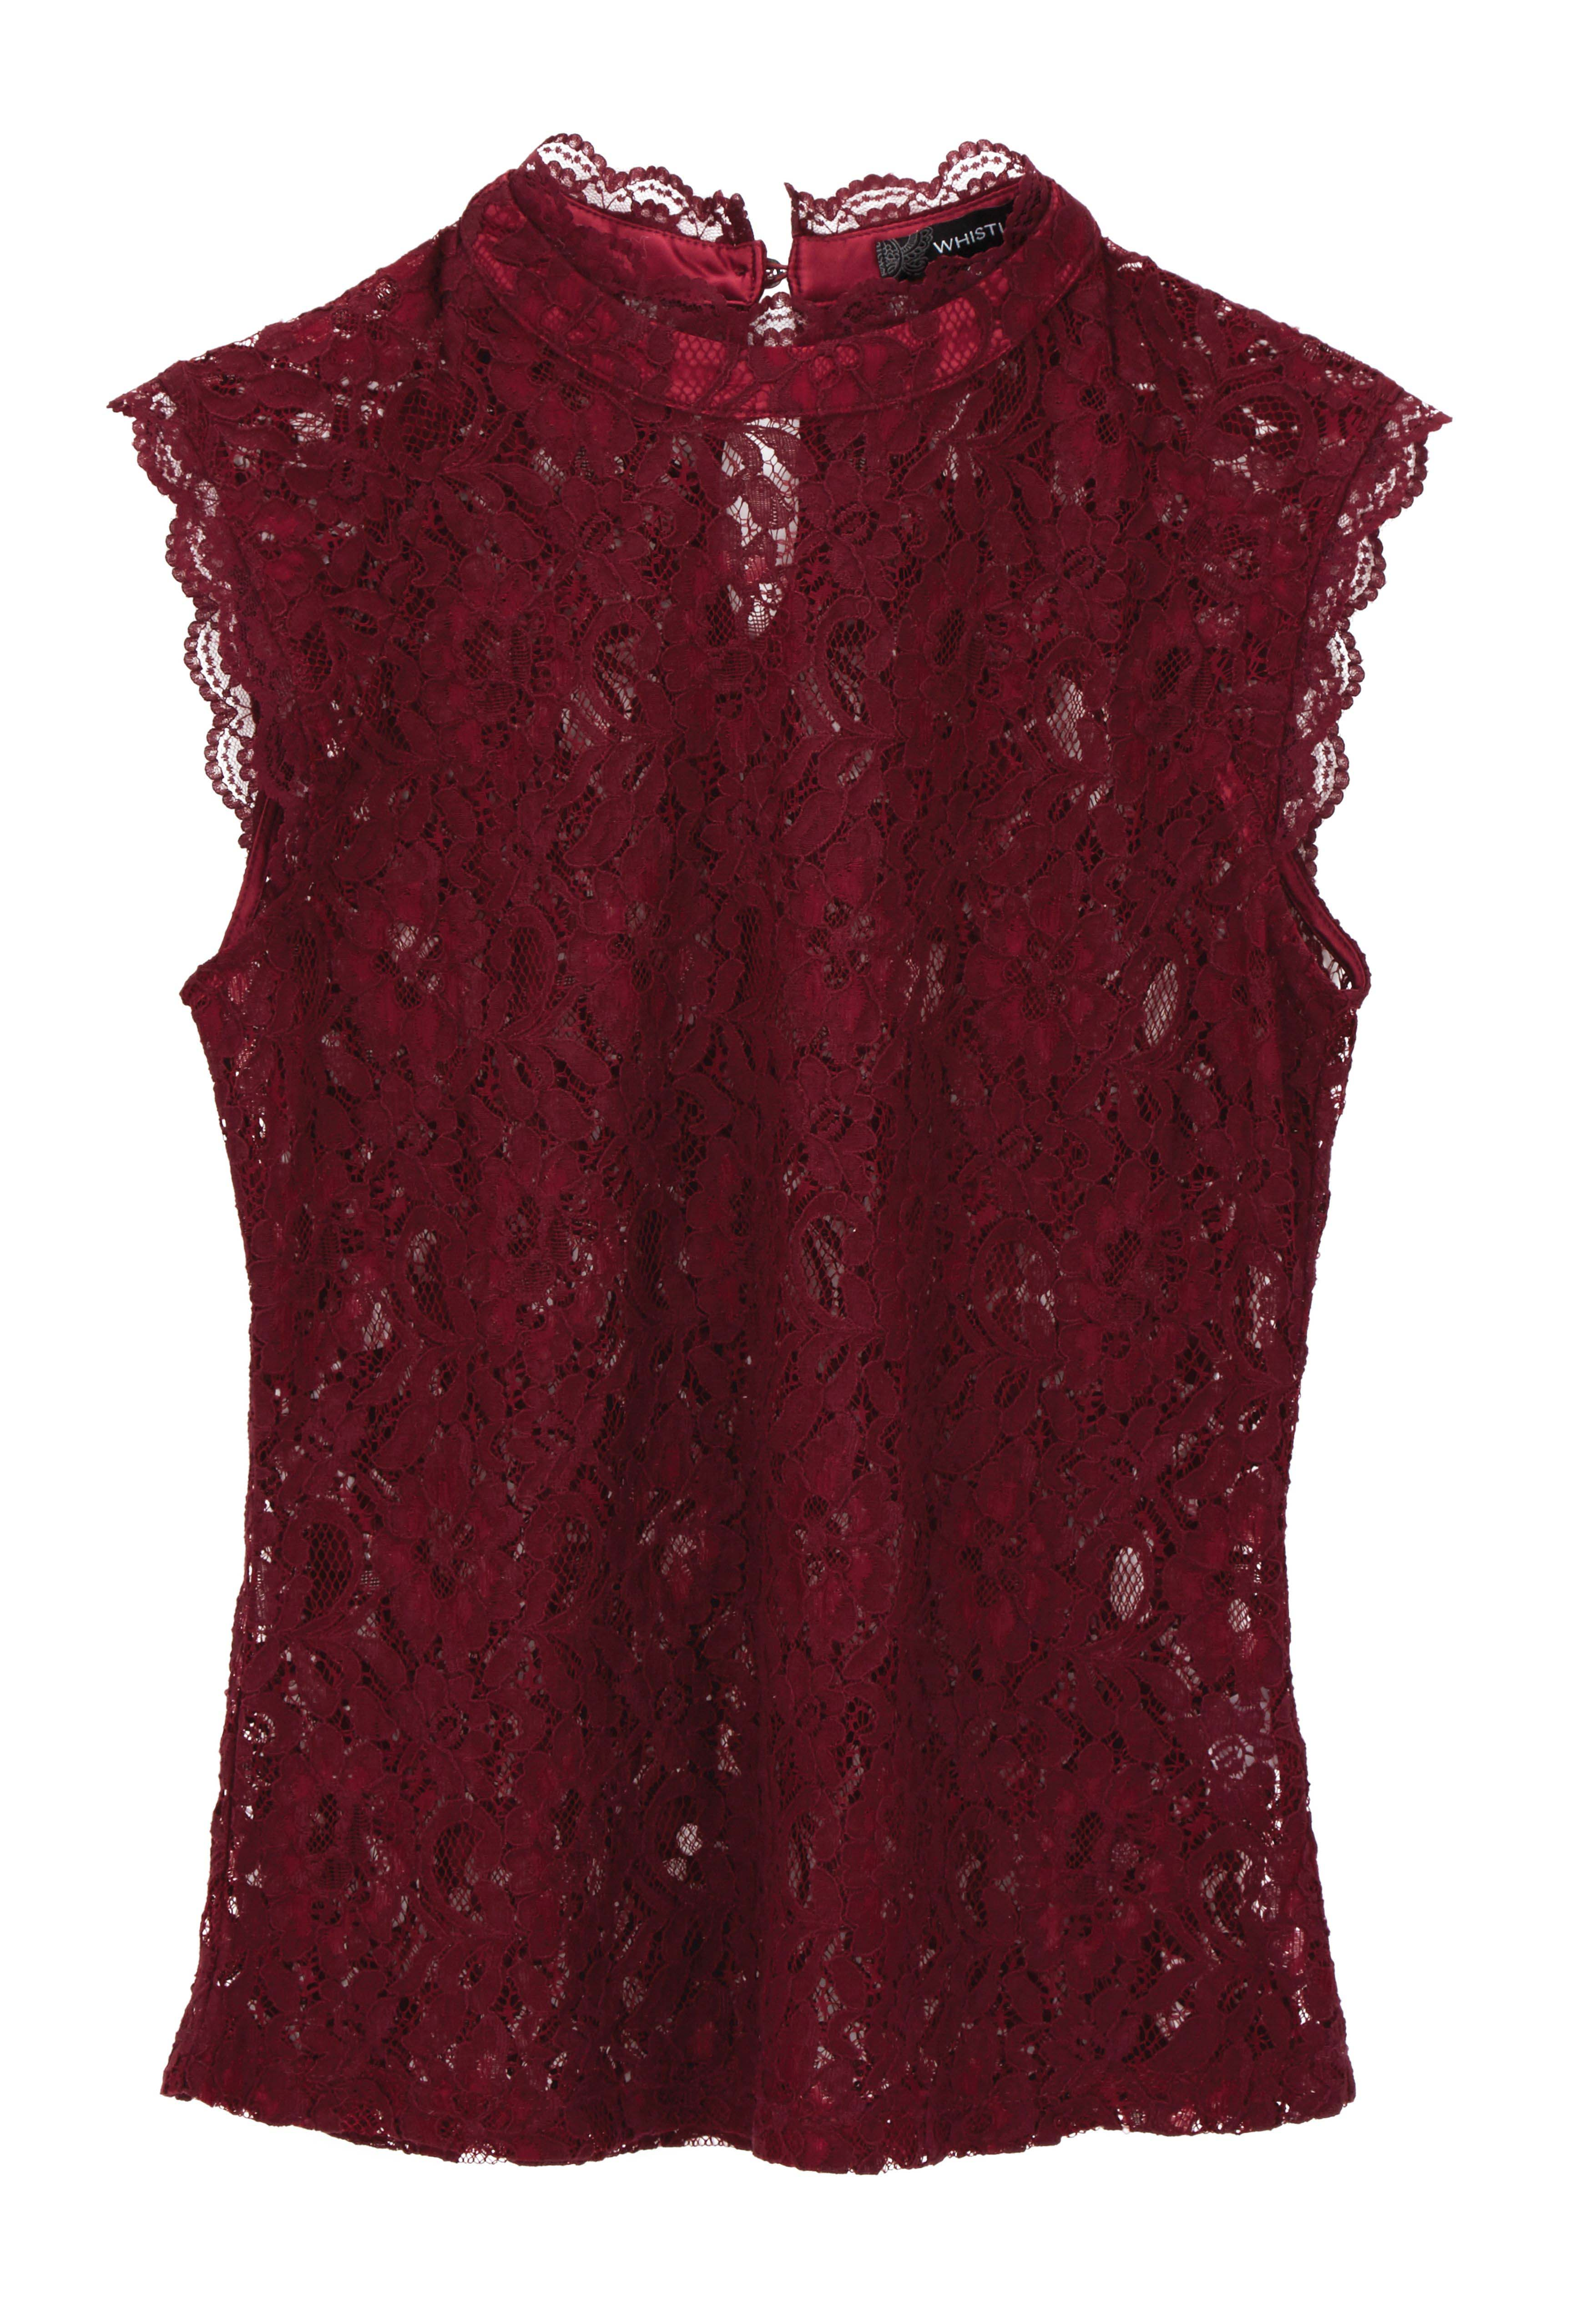 6085430 Whistle Lace Top $59.99 Instore Feb 22 2016